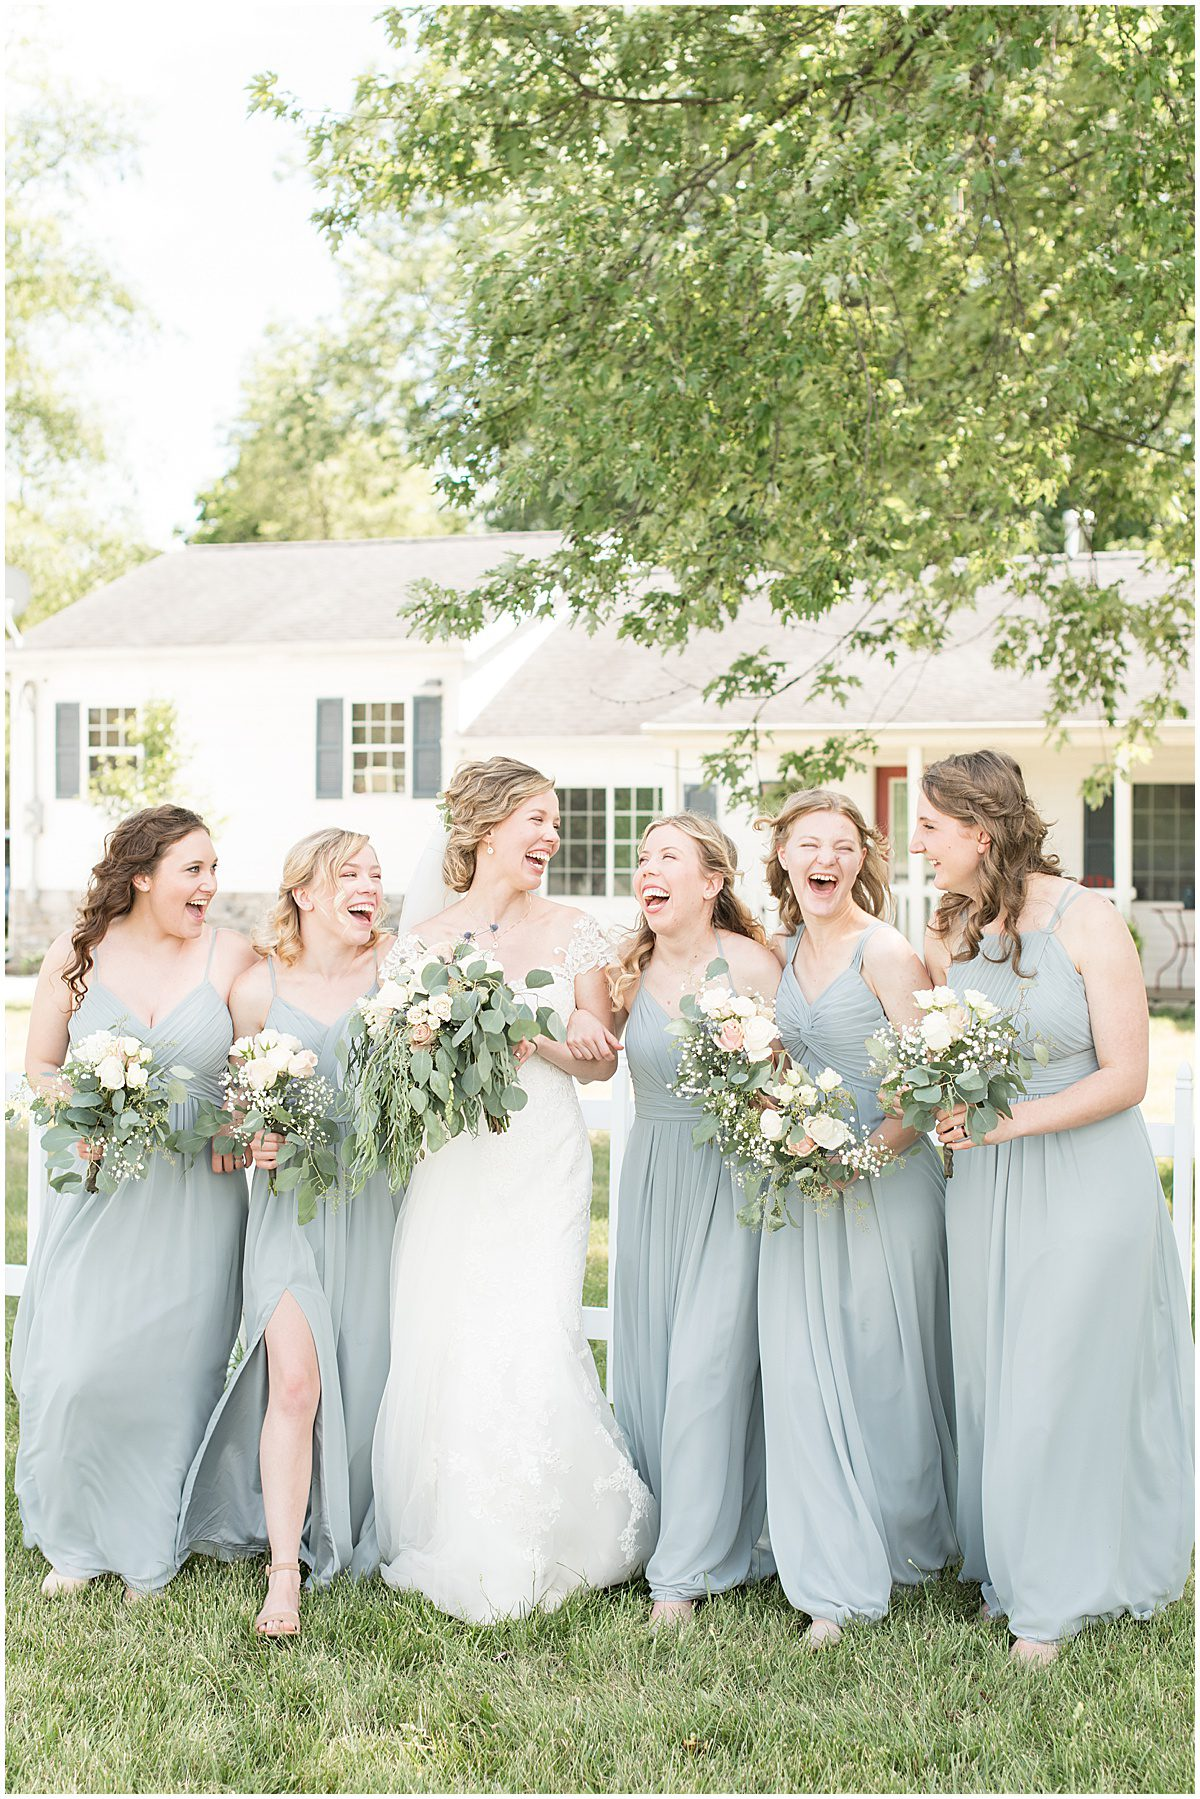 Bridal party photos before wedding at The Matterhorn in Elkhart, Indiana